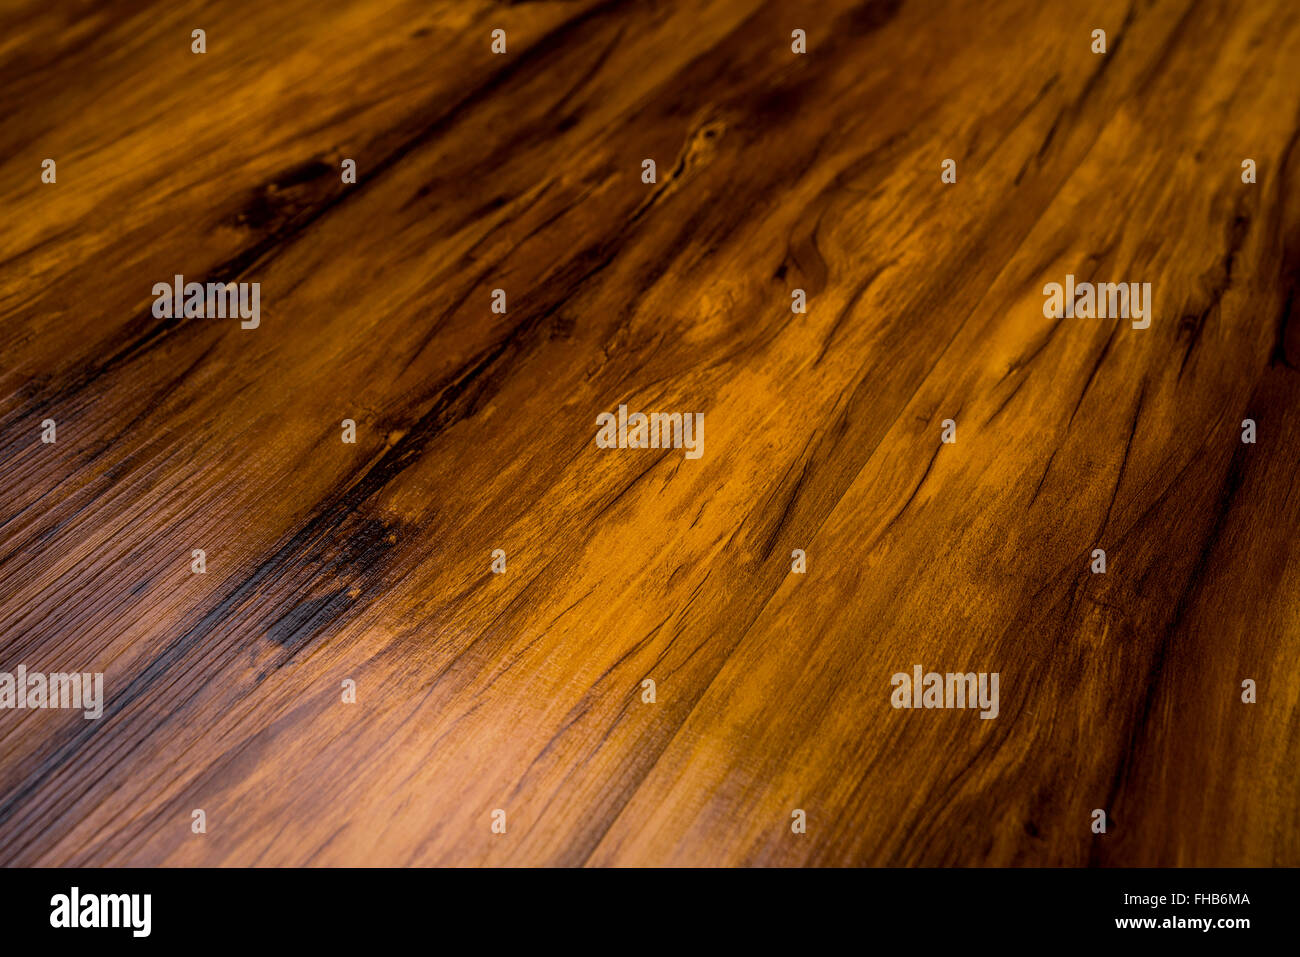 polished wooden flooring showing texture and grain - Stock Image